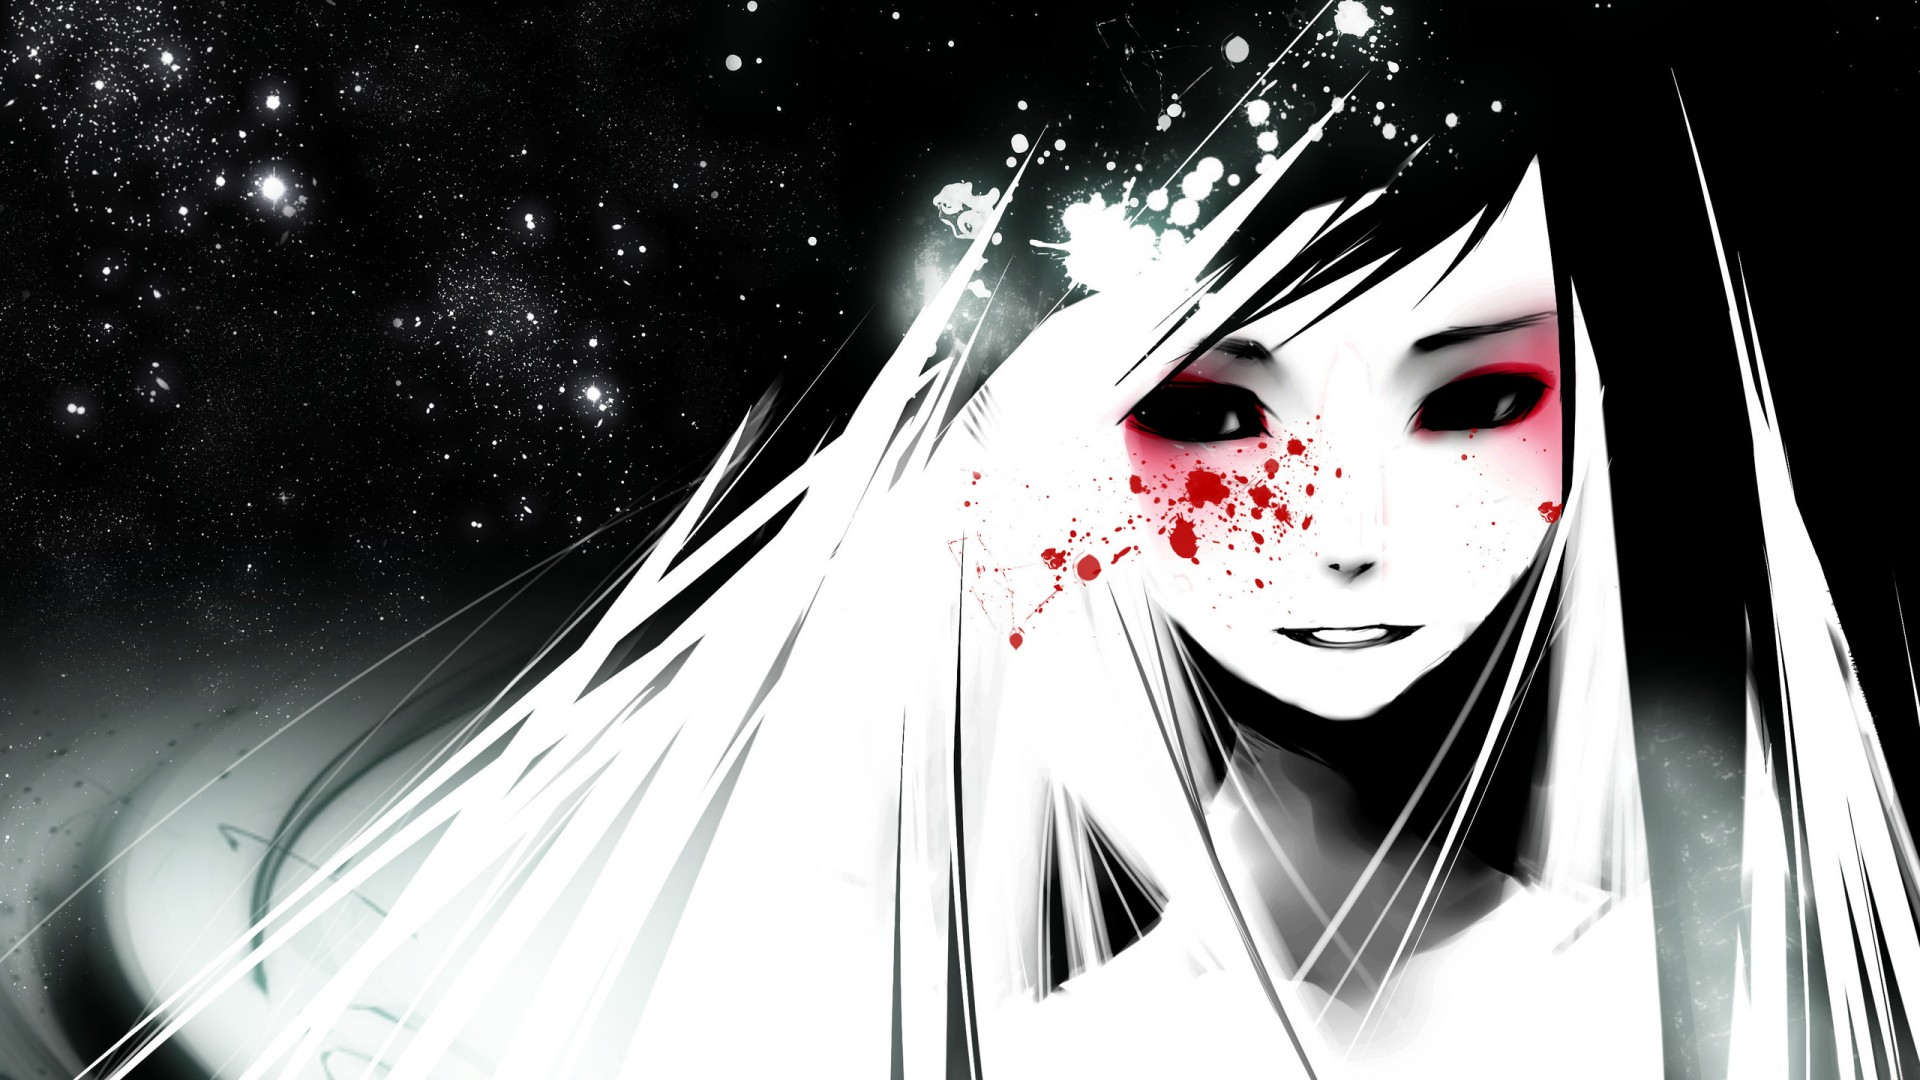 download 39 dark anime cartoon girl hd image 39 hd wallpaper